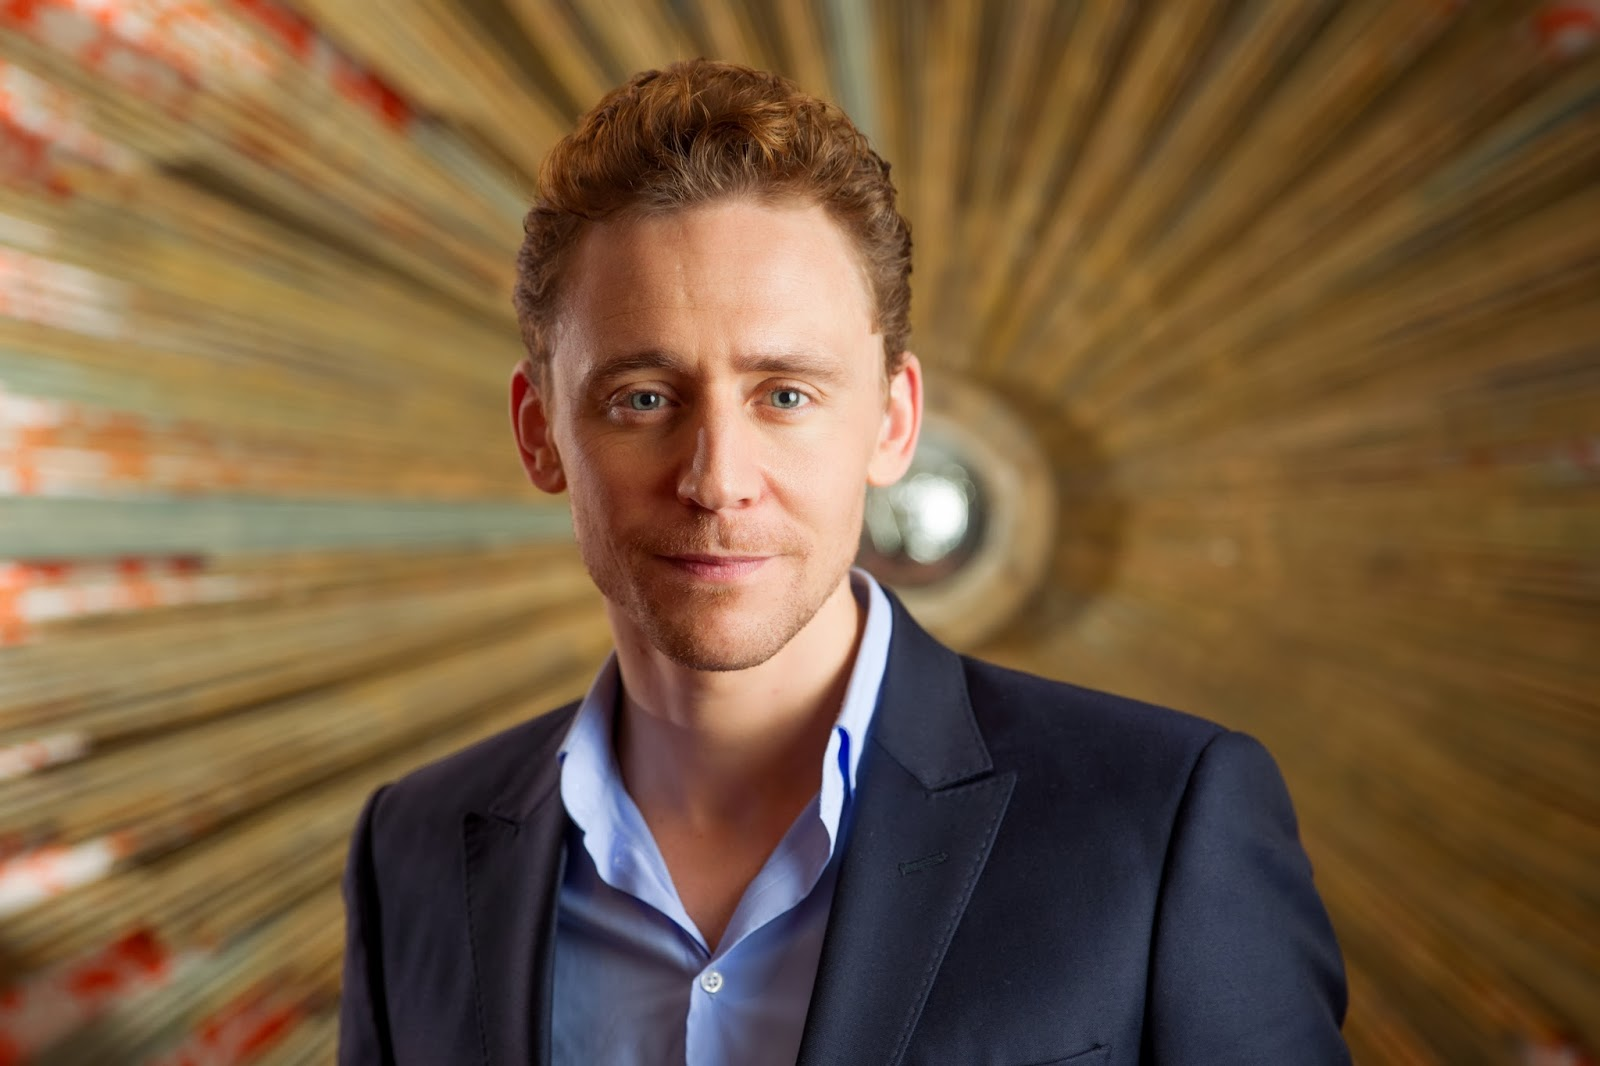 Oggle at Tom Hiddleston auditioning as Thor